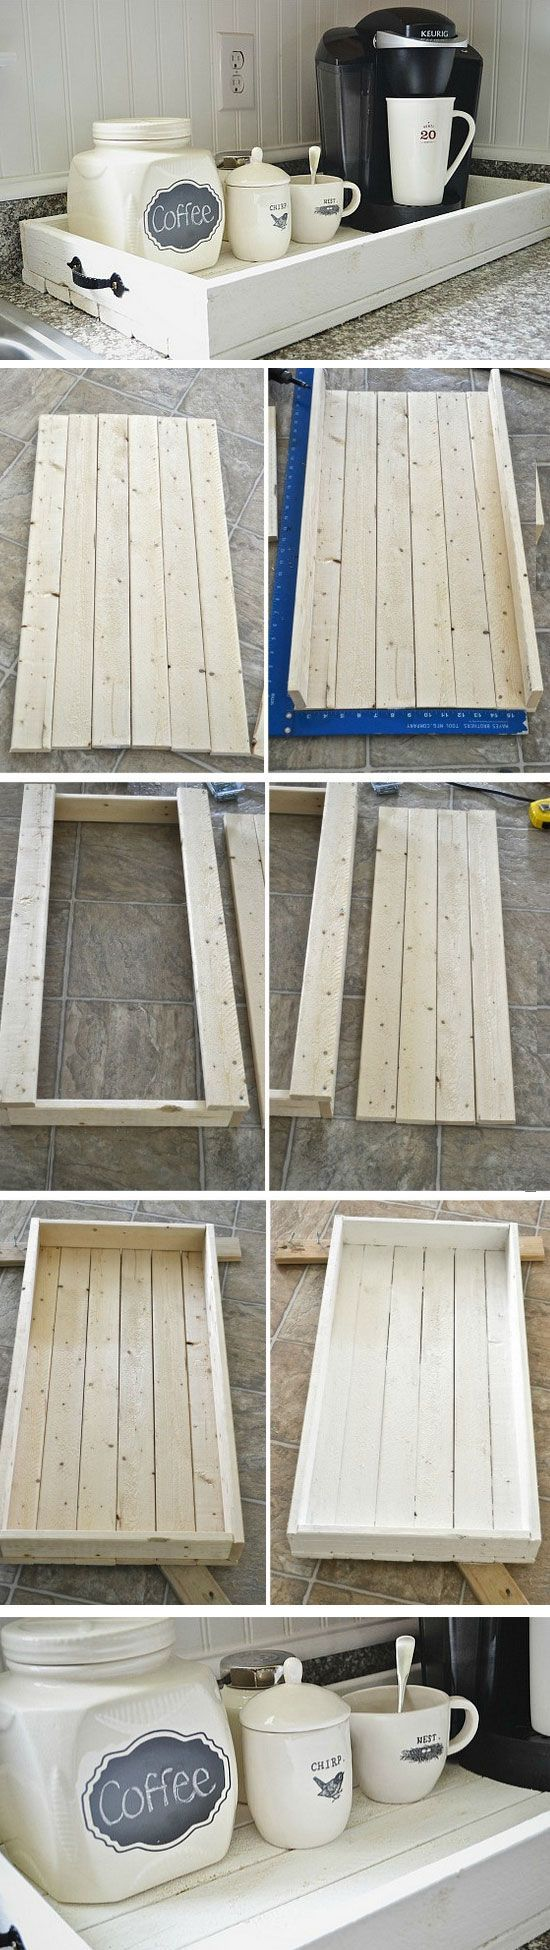 #woodworkingplans #woodworking #woodworkingprojects cool 23 DIY Kitchen Organization Ideas